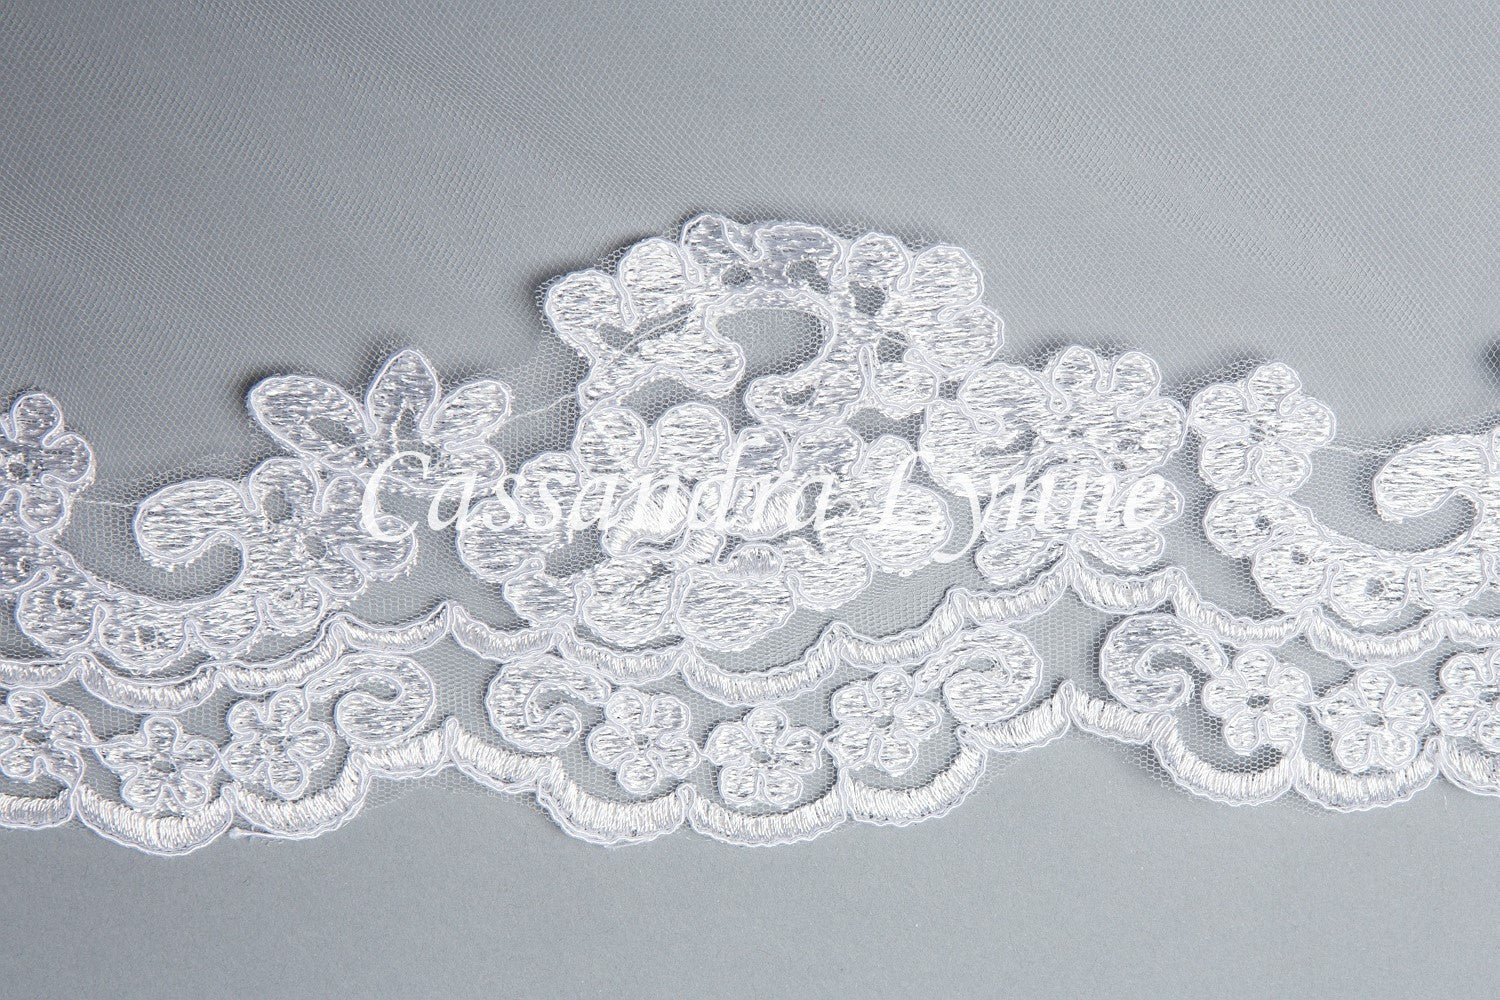 Custom Wedding Veil with Floral Lace Trim